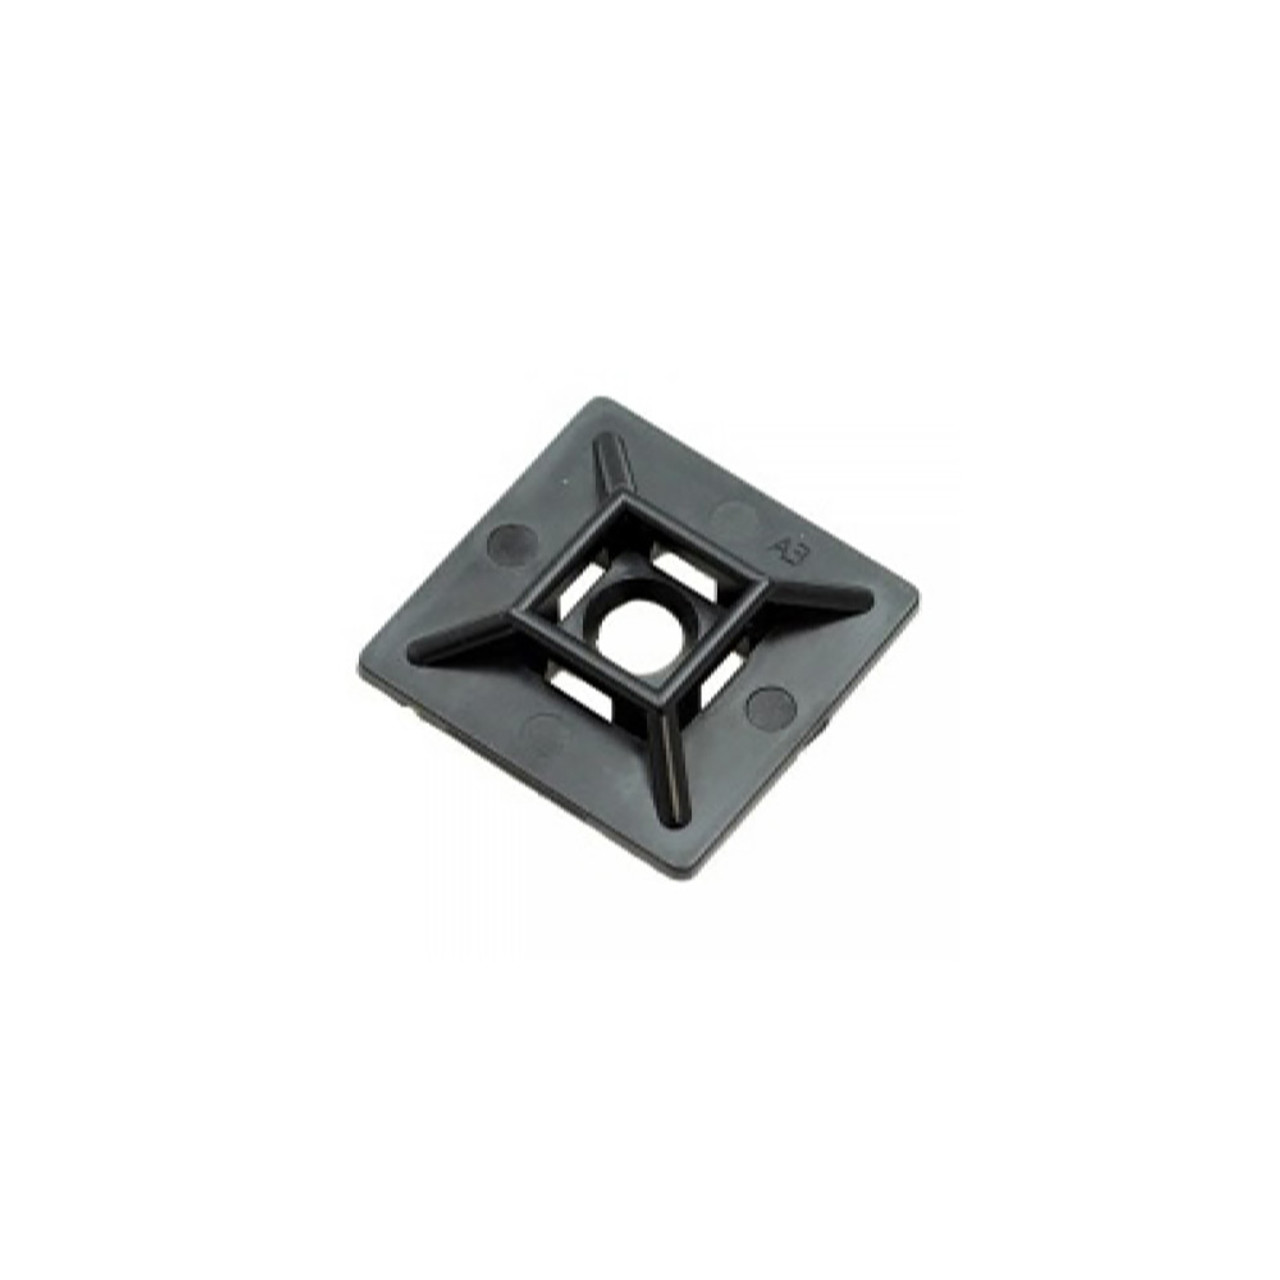 3f1e7584a5cd HFC2/4 Self-adhesive Cable Tie Mounts, 1.1 x 1.1in (28 x 28mm ...